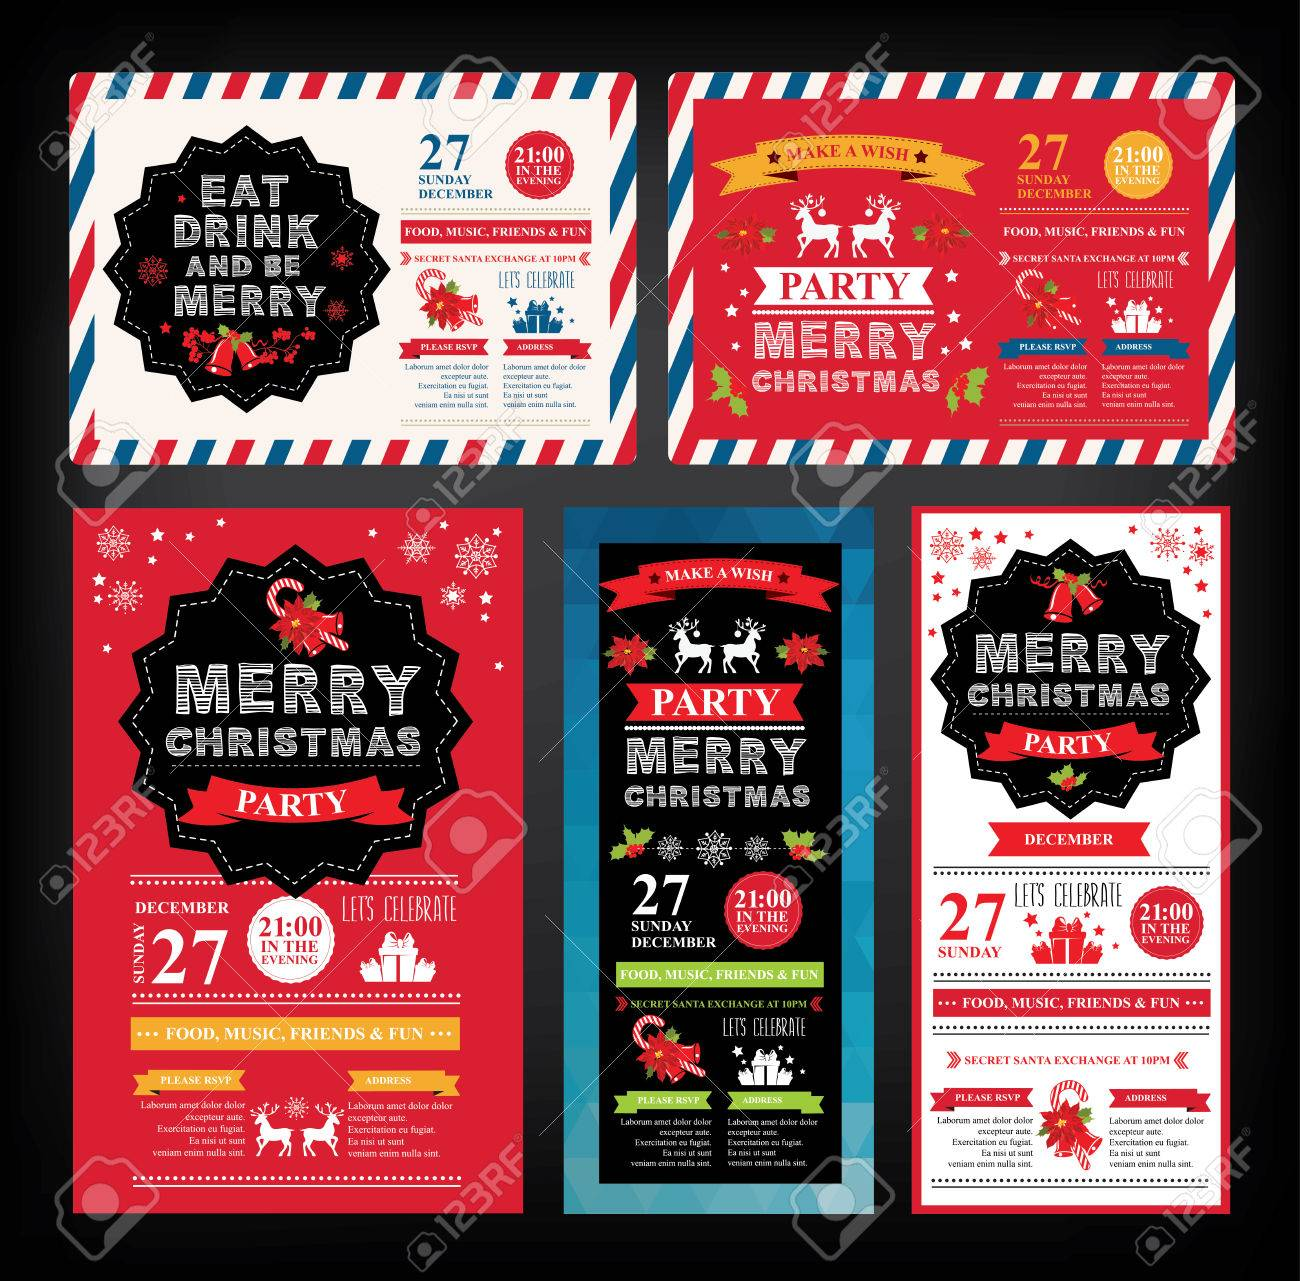 christmas party invitation holiday card vector template christmas party invitation holiday card vector template graphic stock vector 46040309